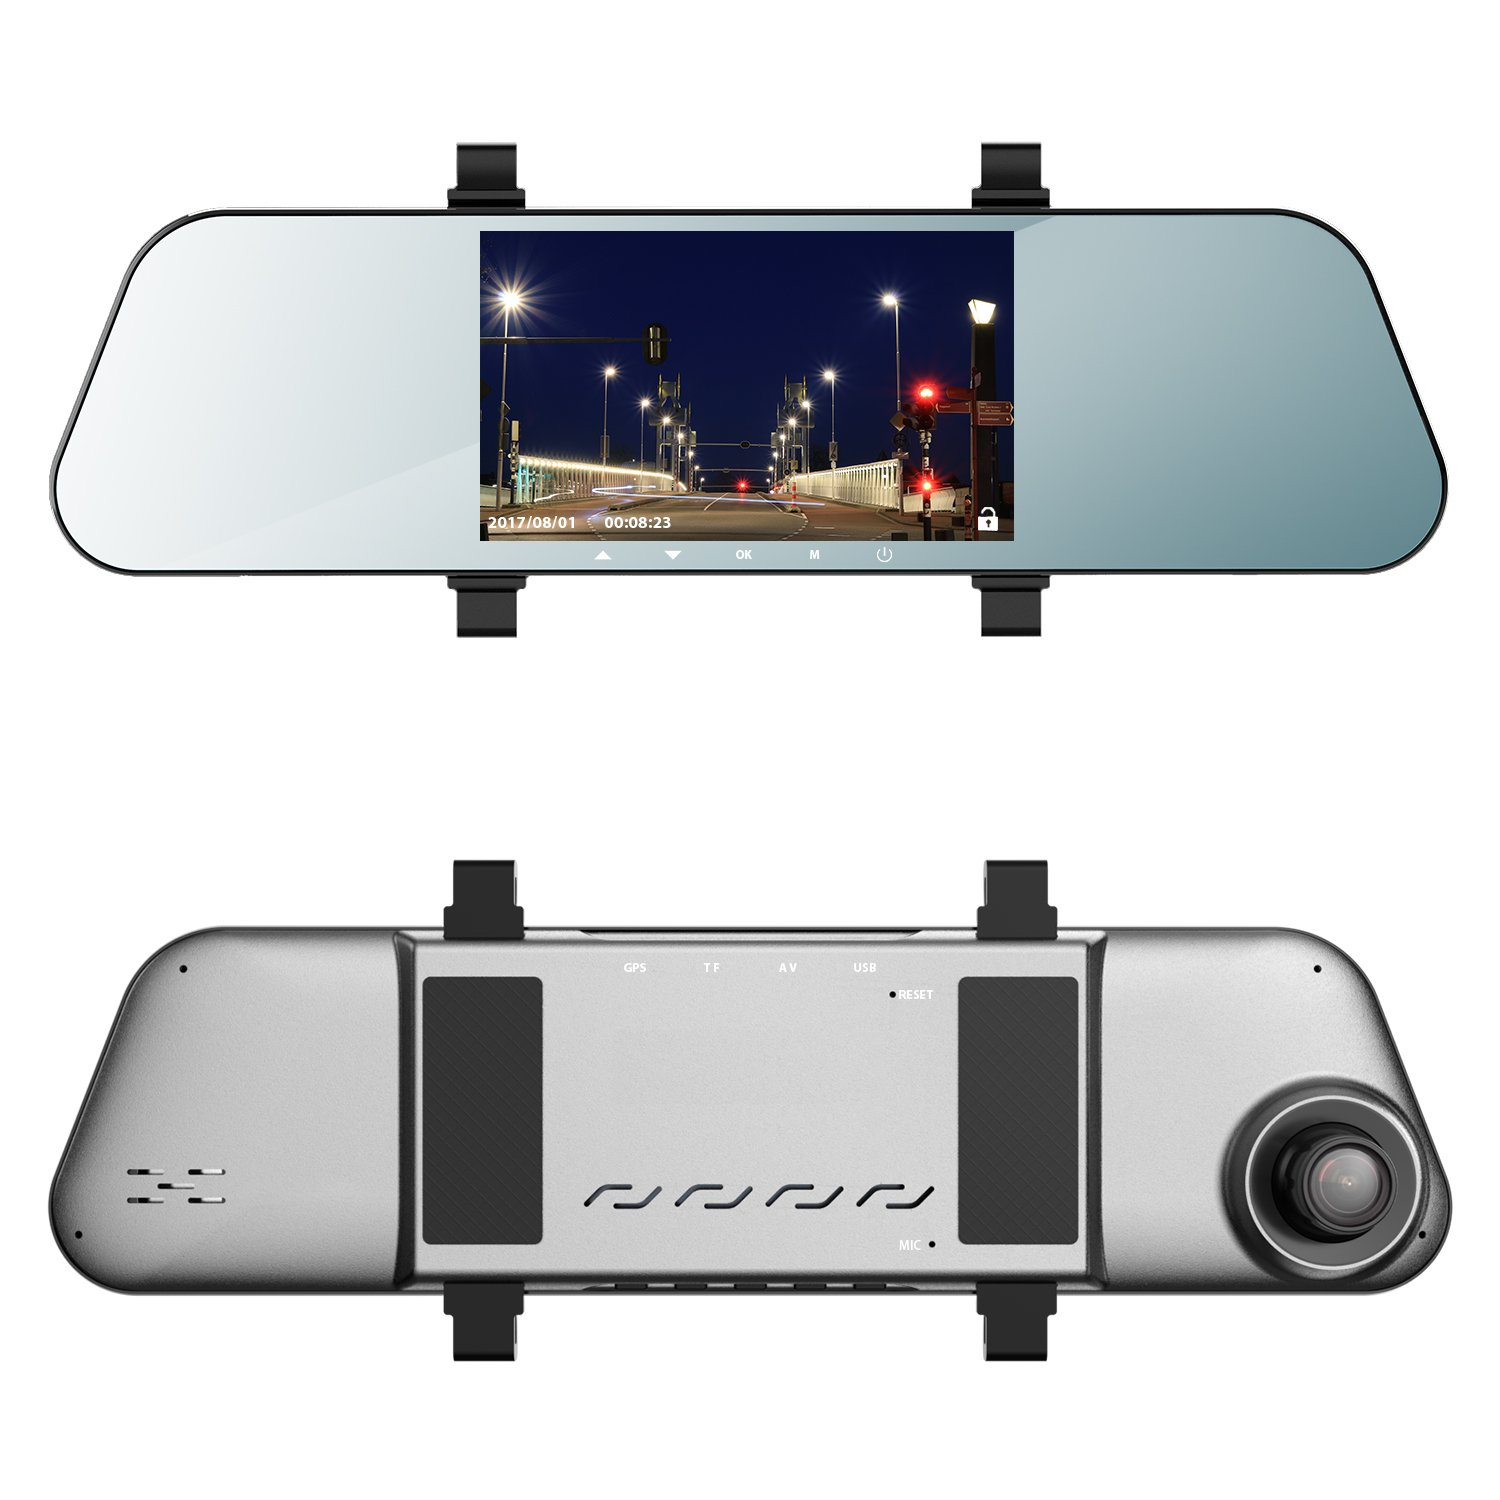 EHOOM Mirror Dash Cam A8, Front View HD Cam, 5'' IPS Touch Screen FHD 1080, 6-Lane 170° Wide-Angle View Lens, Car DVR with G-Sensor, Loop Recording, Parking Monitor, Al-alloyed Case, Super Night Vision